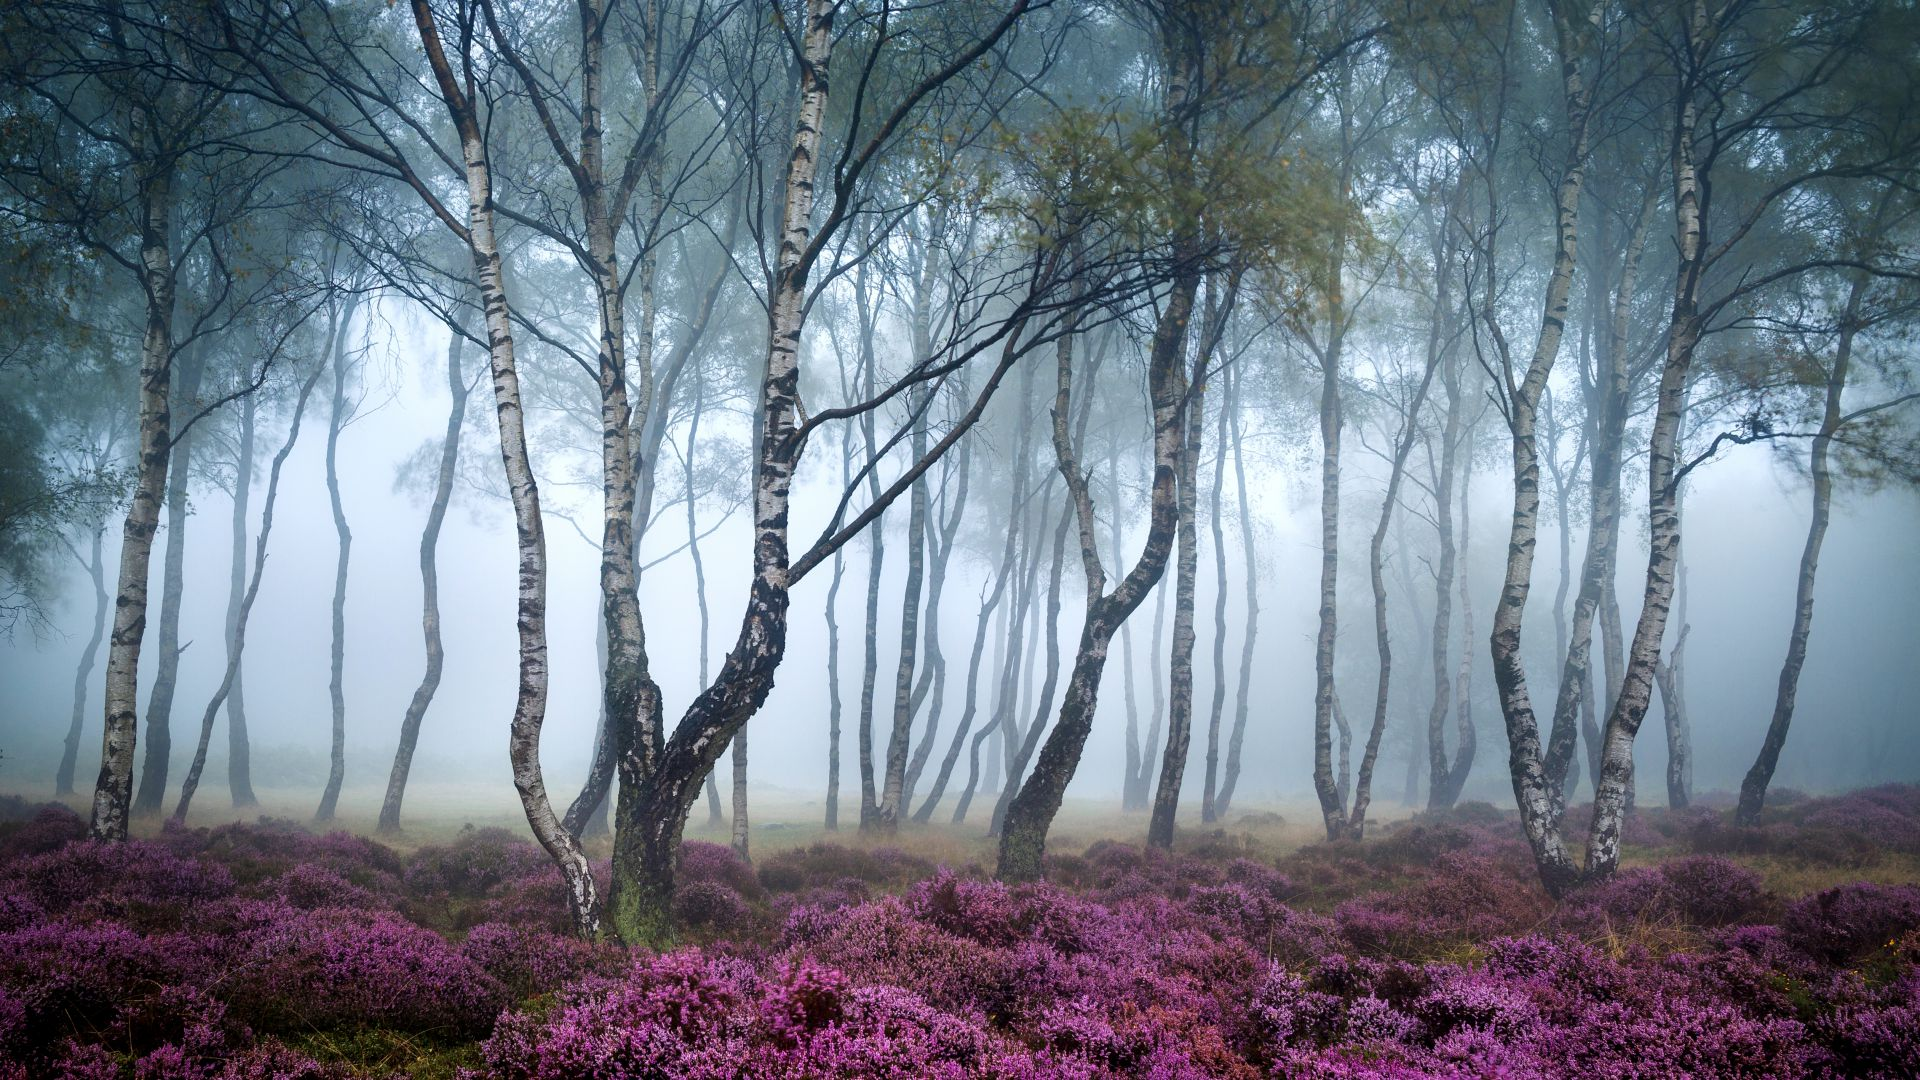 Stanton Moor, 5k, 4k wallpaper, 8k, Peak District, UK, Forest, wildflowers, fog (horizontal)